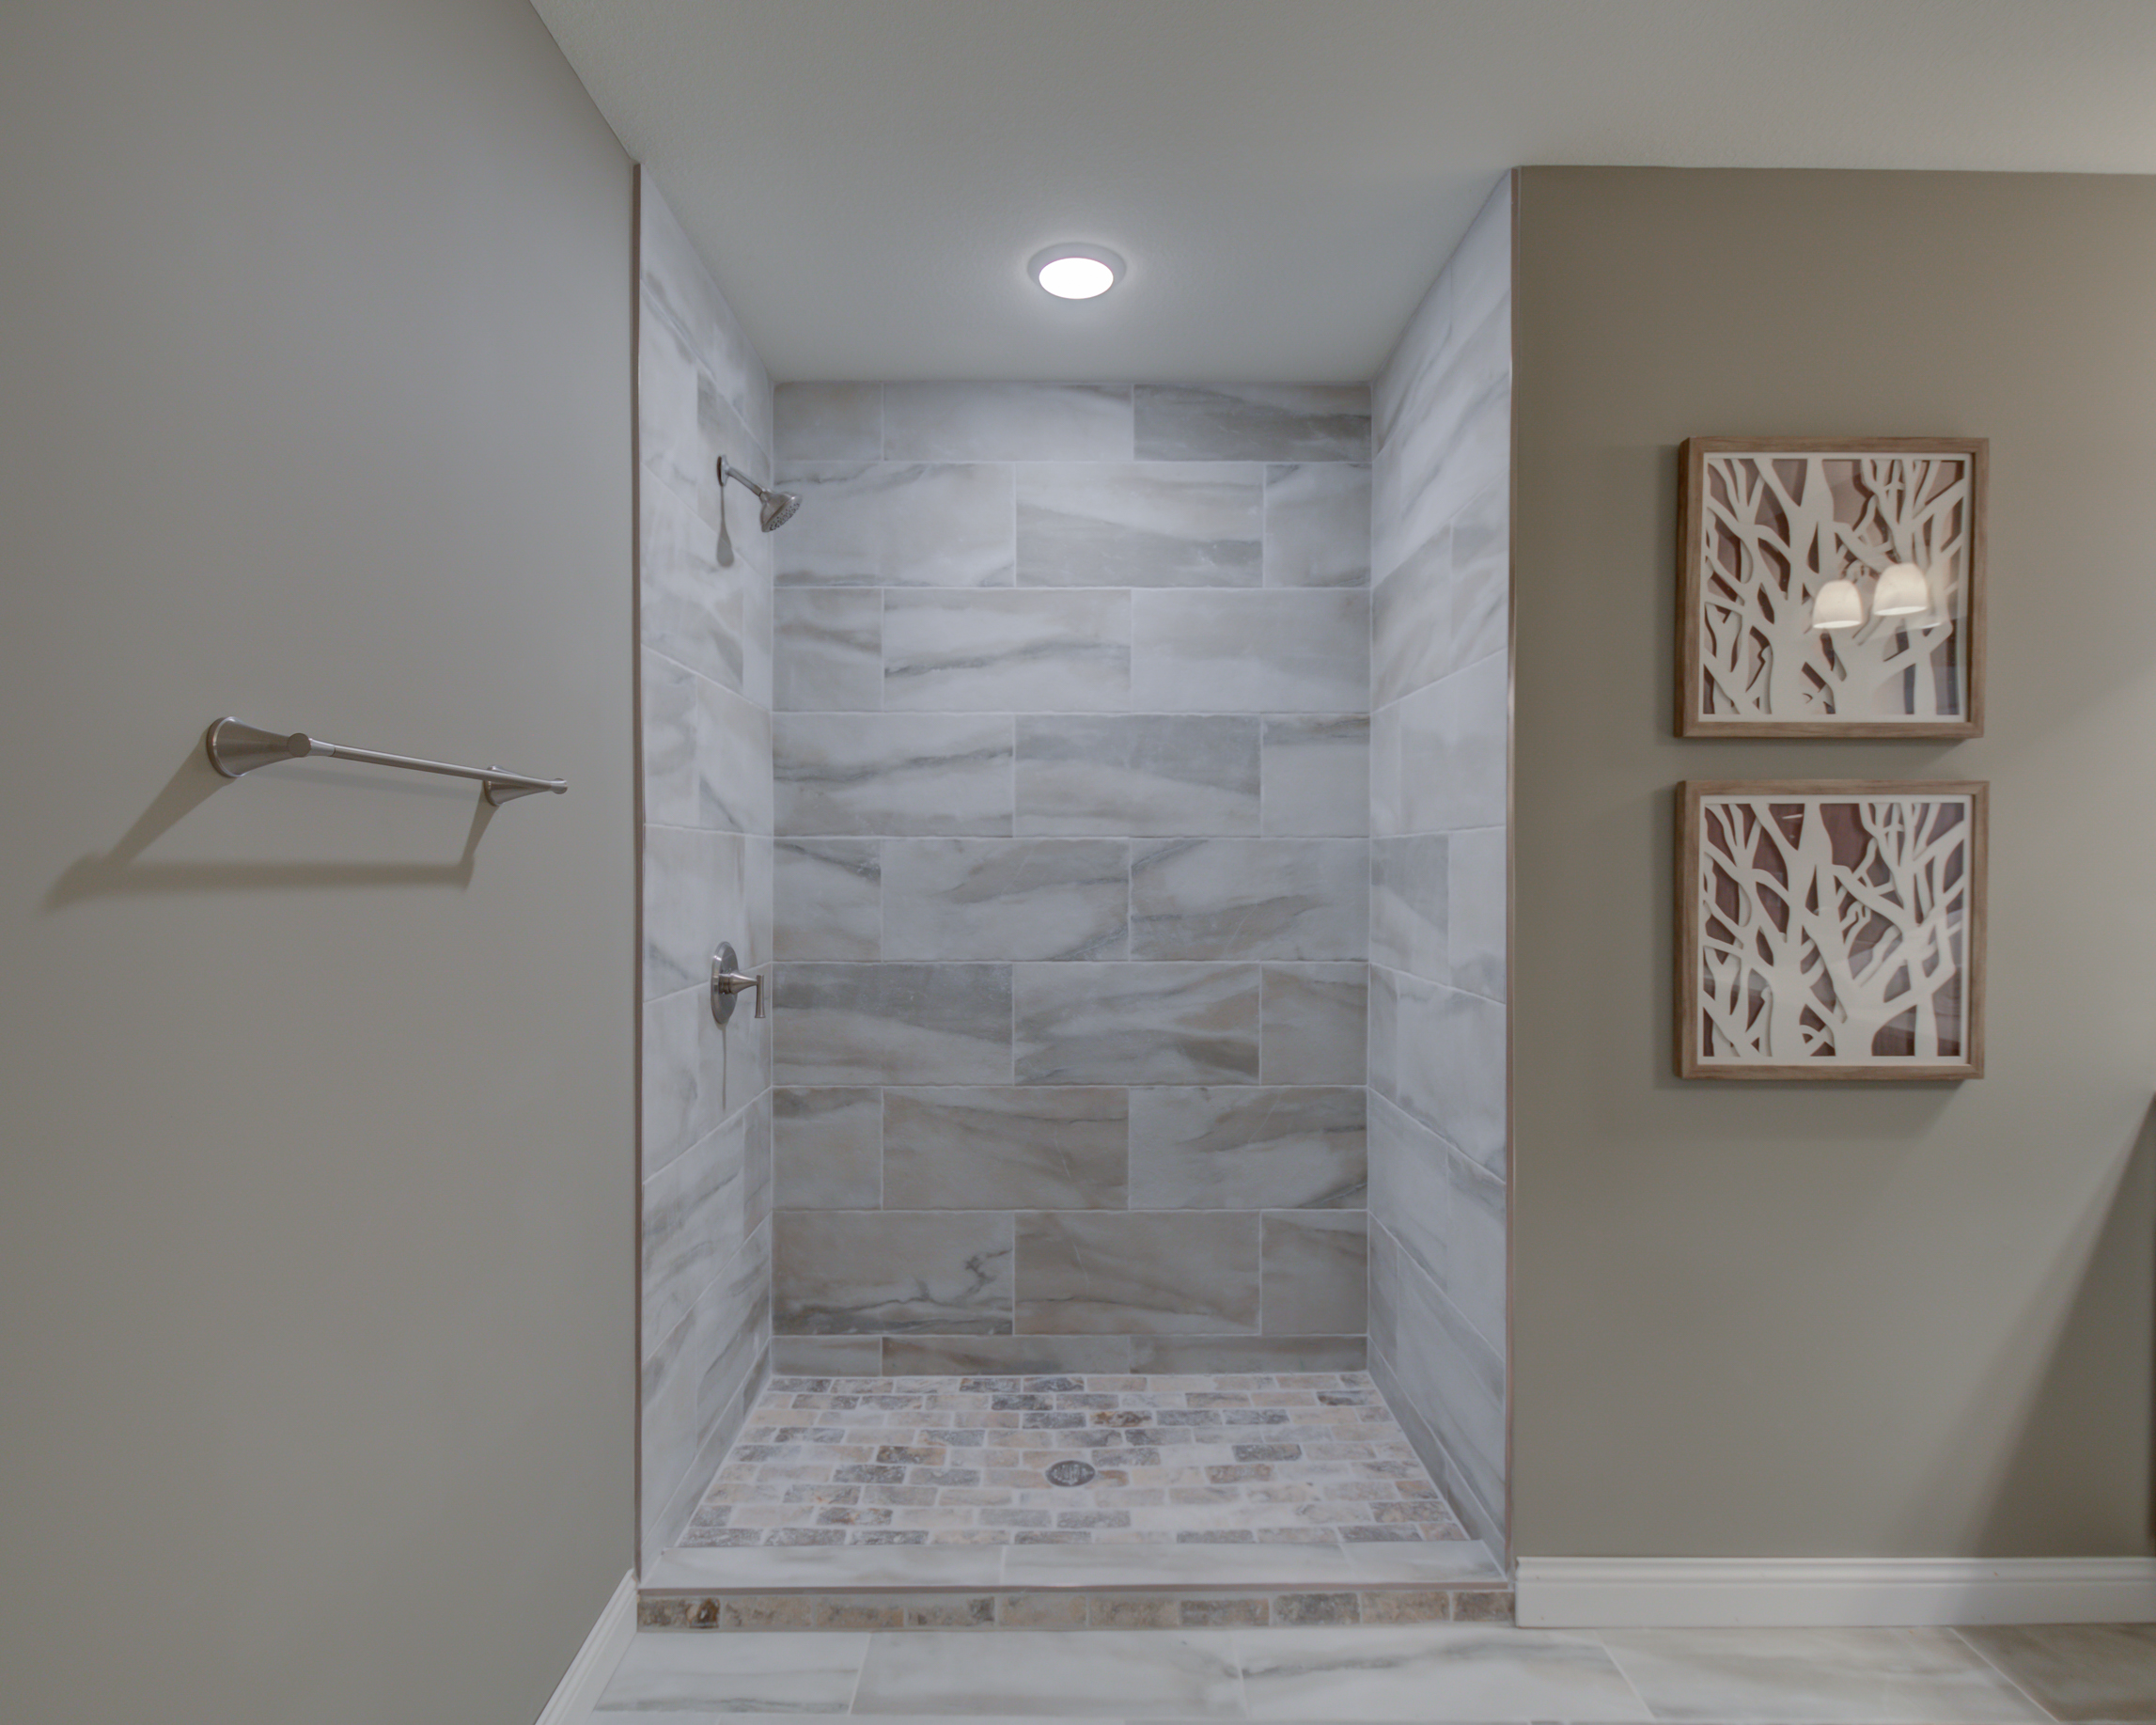 Tile Shower New Home.jpg